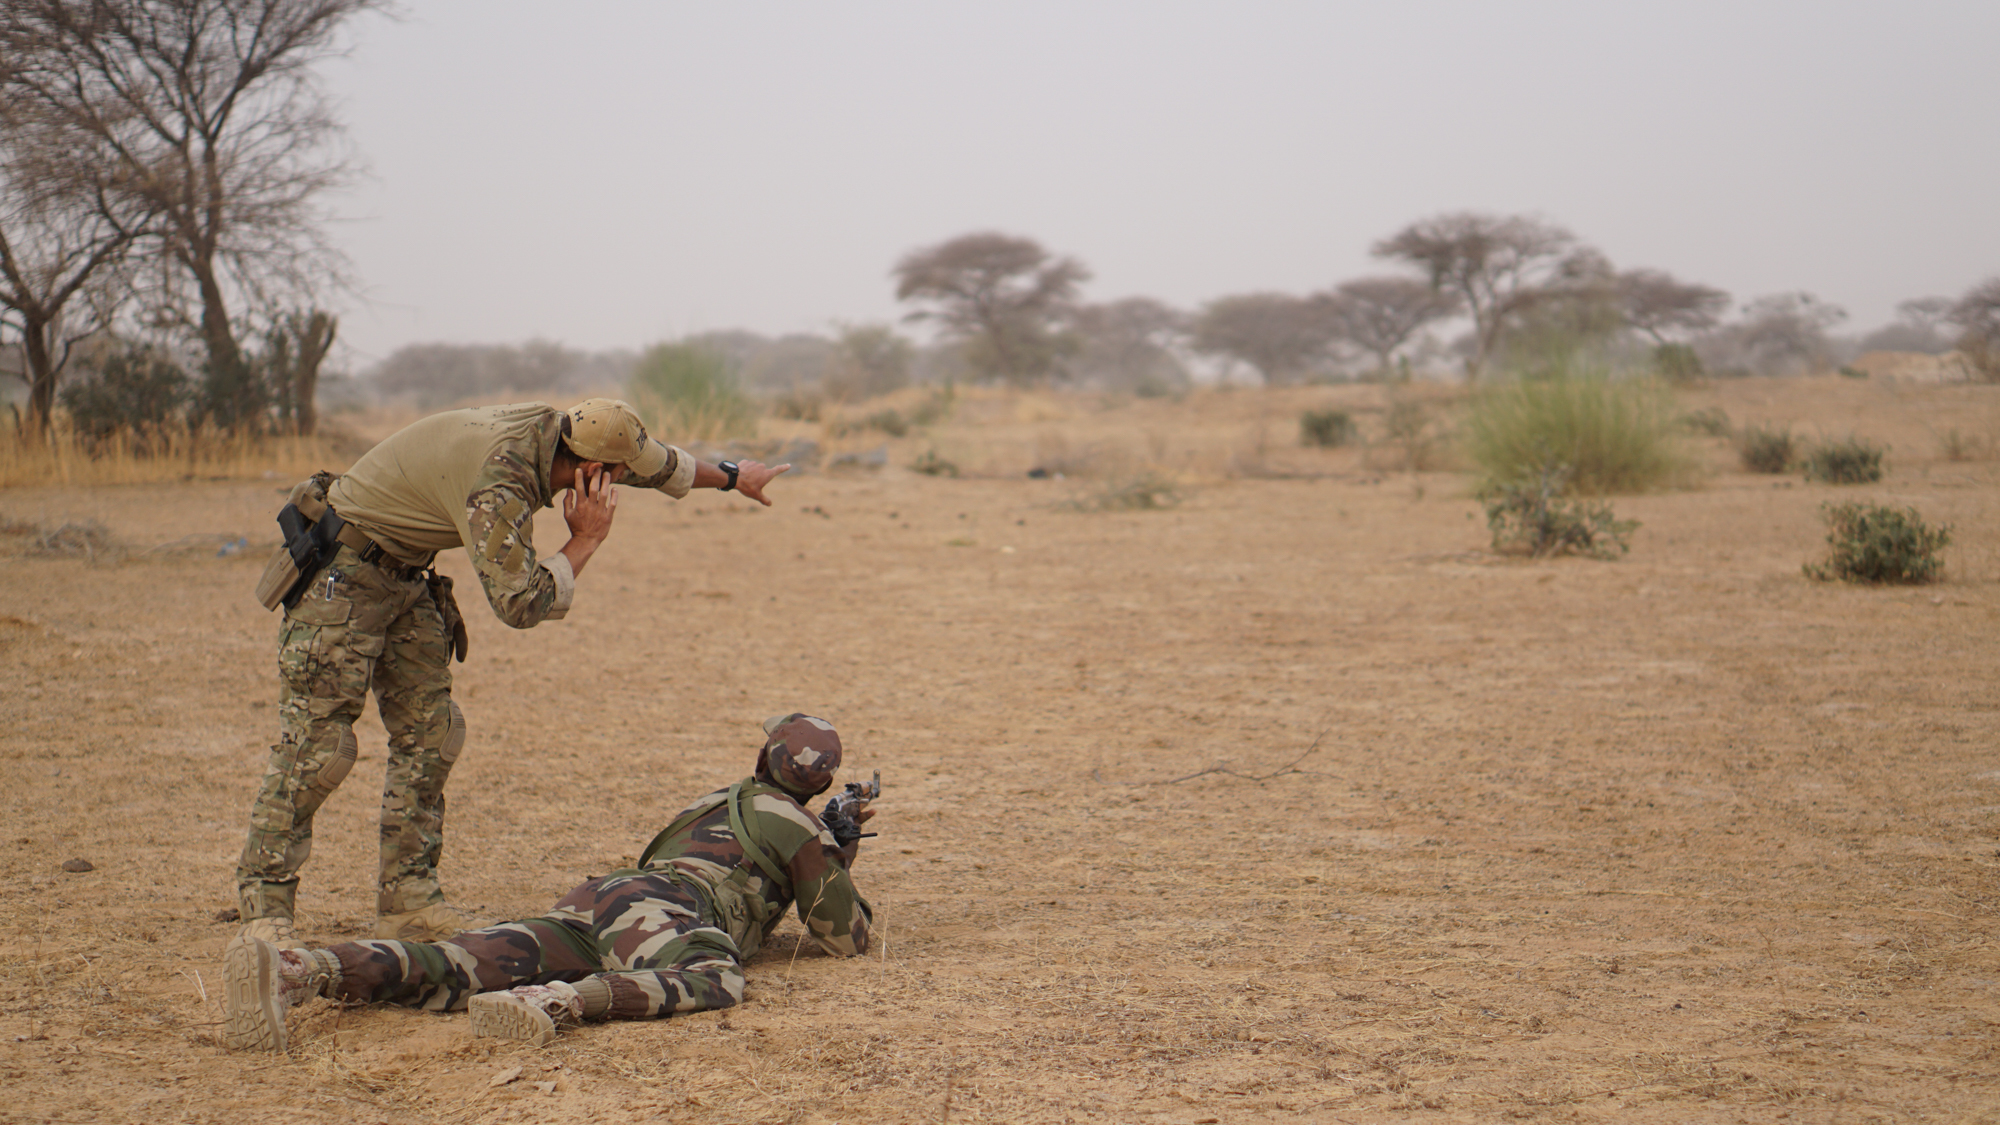 A Belgian Special Operations Forces service member shows a Nigerien soldier his sector of fire while reacting to contact on a dismounted patrol during Exercise Flintlock 2017 in Diffa, Niger, March 11, 2017. Flintlock bolsters partnerships between African, European and North American Special Operations Forces which increases their ability to work together in response to crises. (U.S. Army photo by Spc. Zayid Ballesteros/Released)